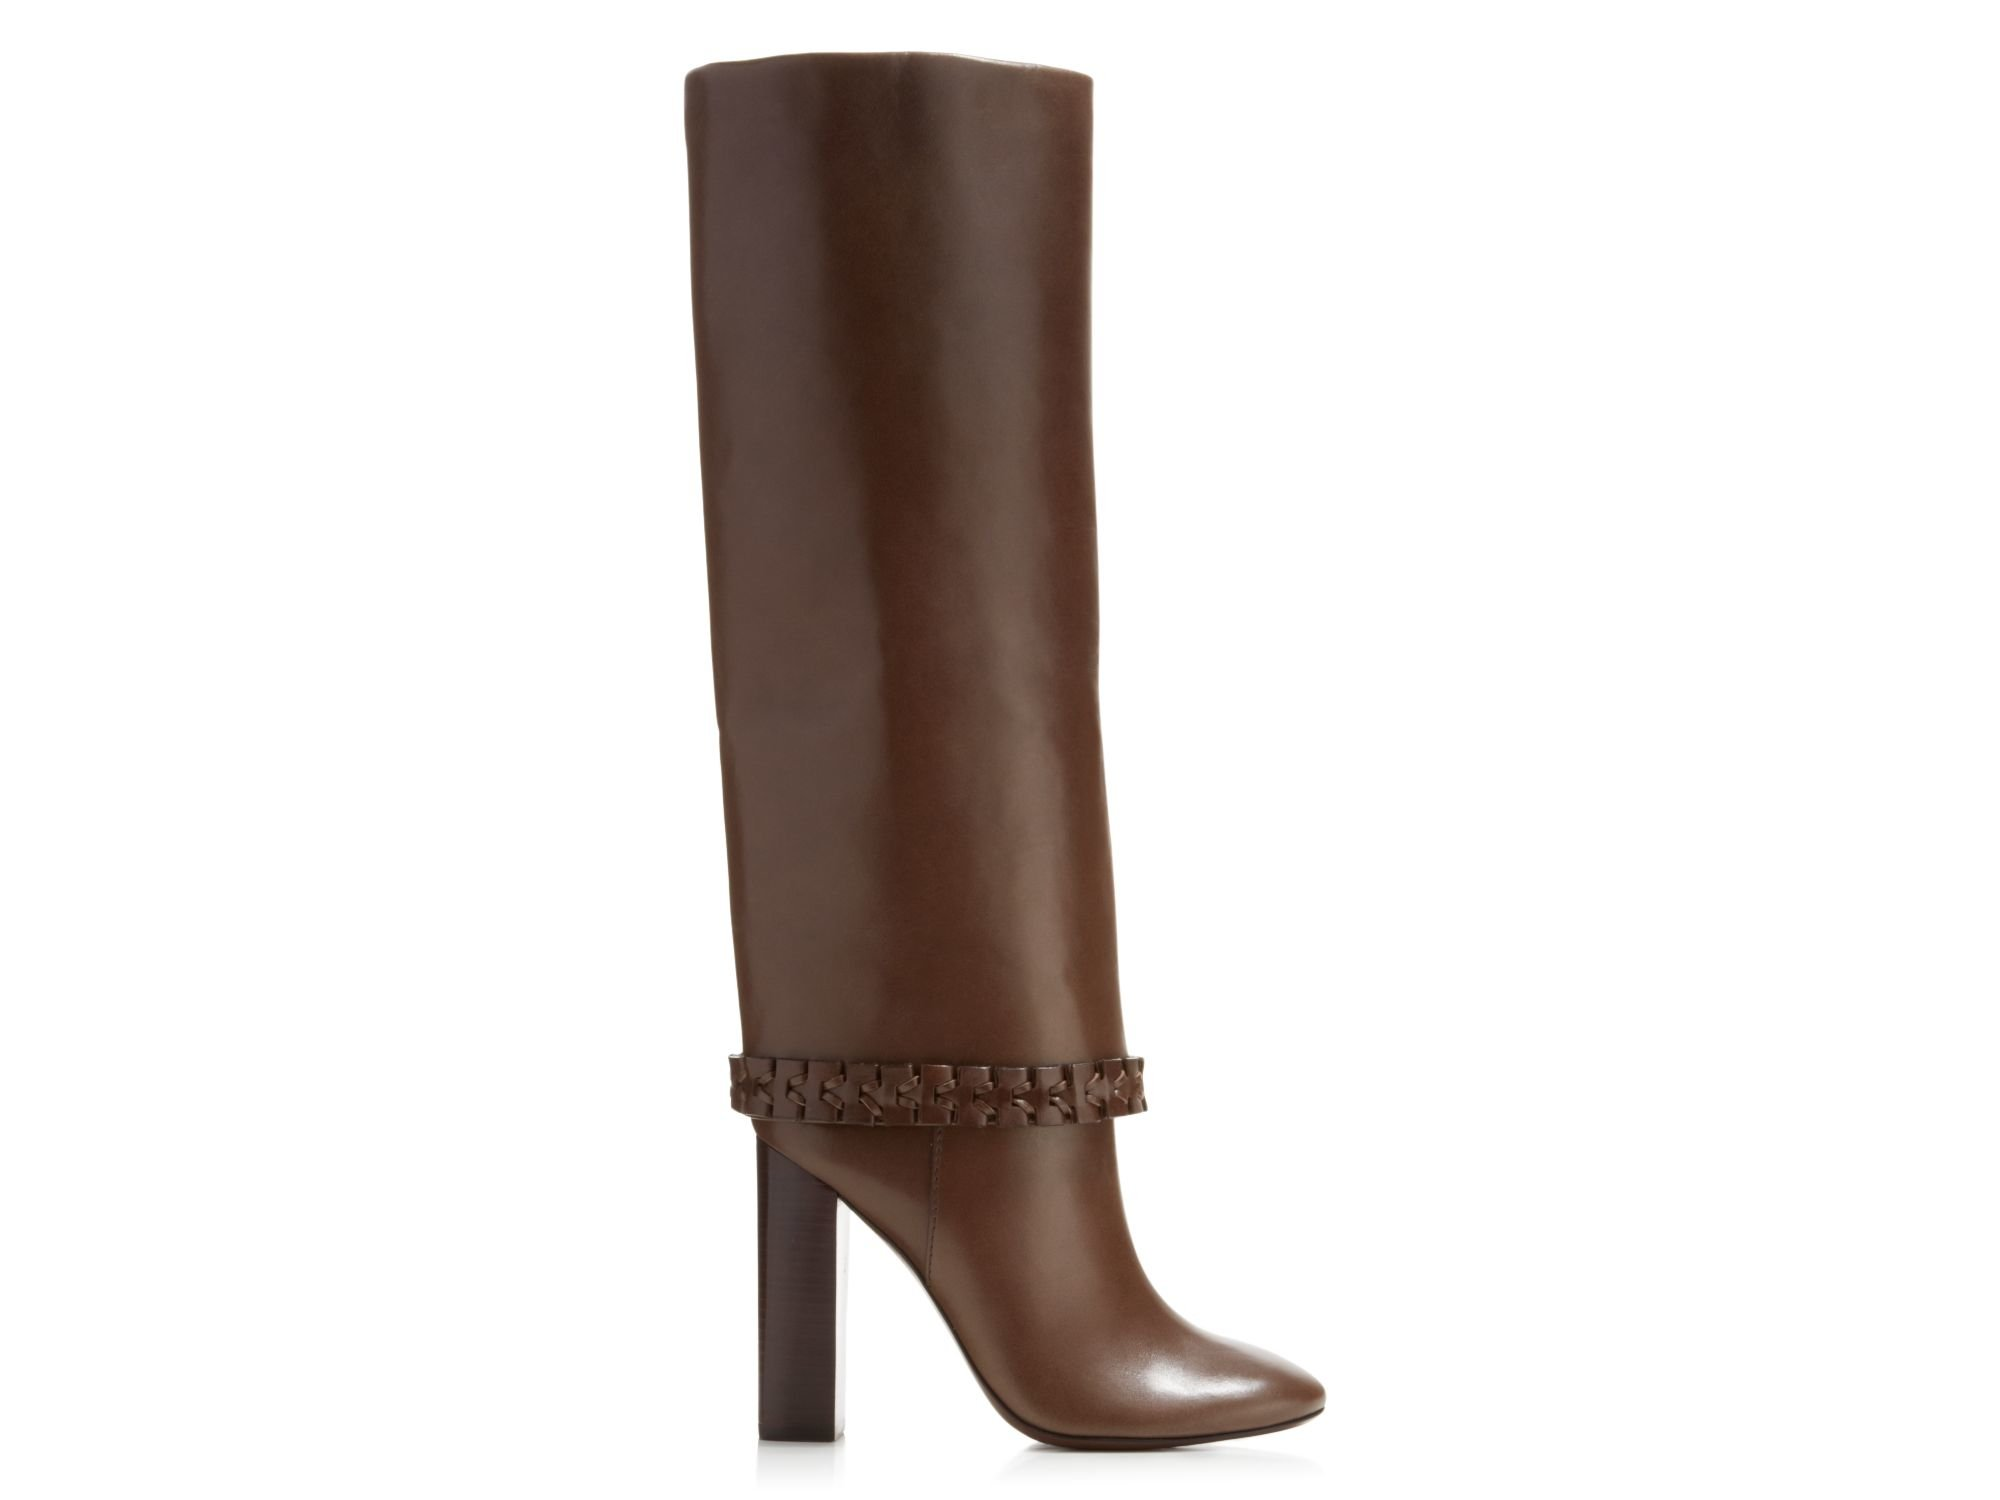 97690021709 Lyst - Tory Burch Sarava High Heel Boots in Brown